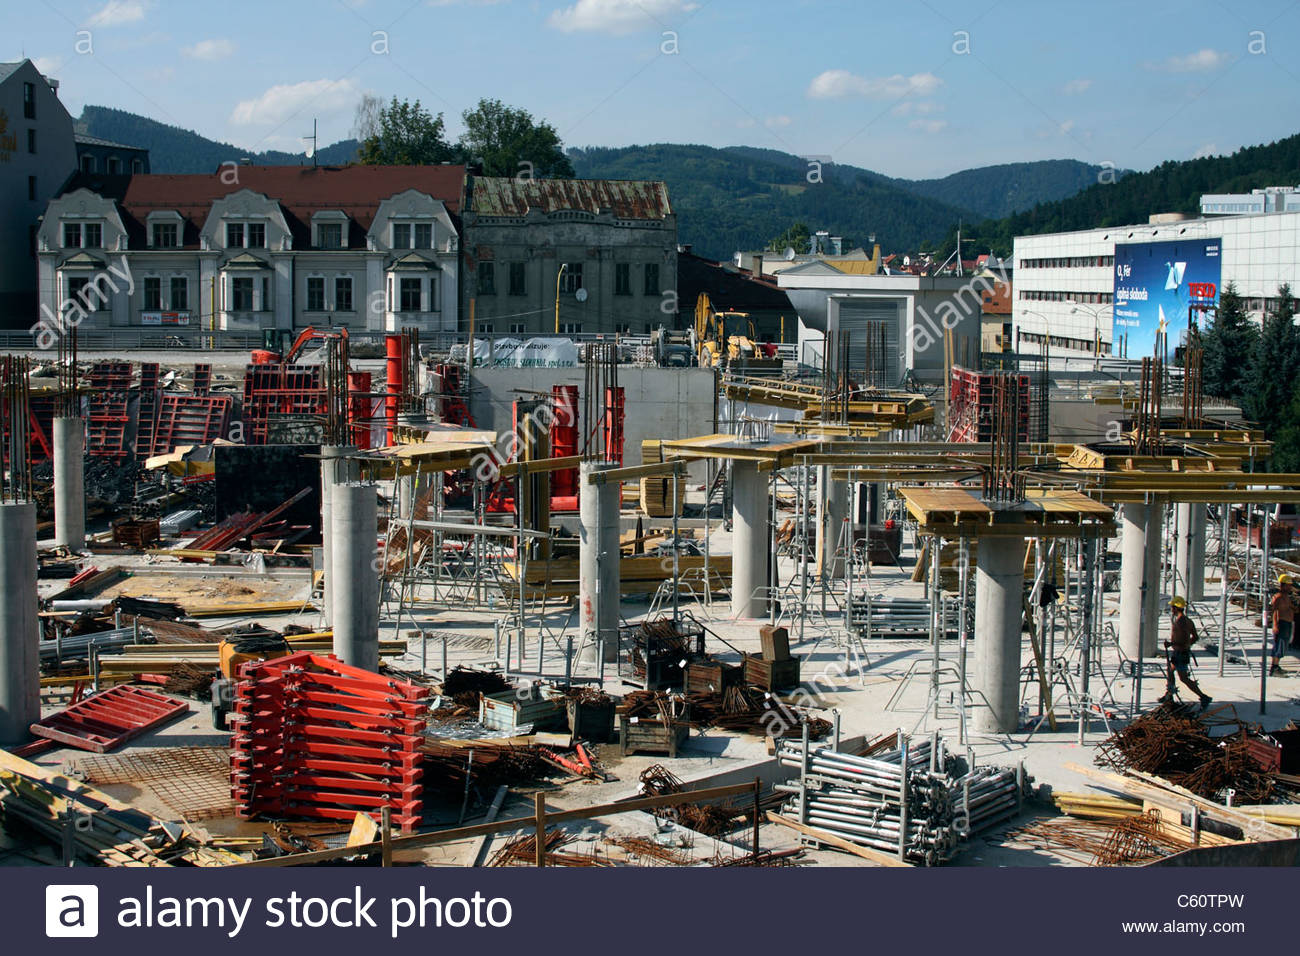 559ea06af Mirage Shopping Centre, in Zilina, Slovakia - under construction ...